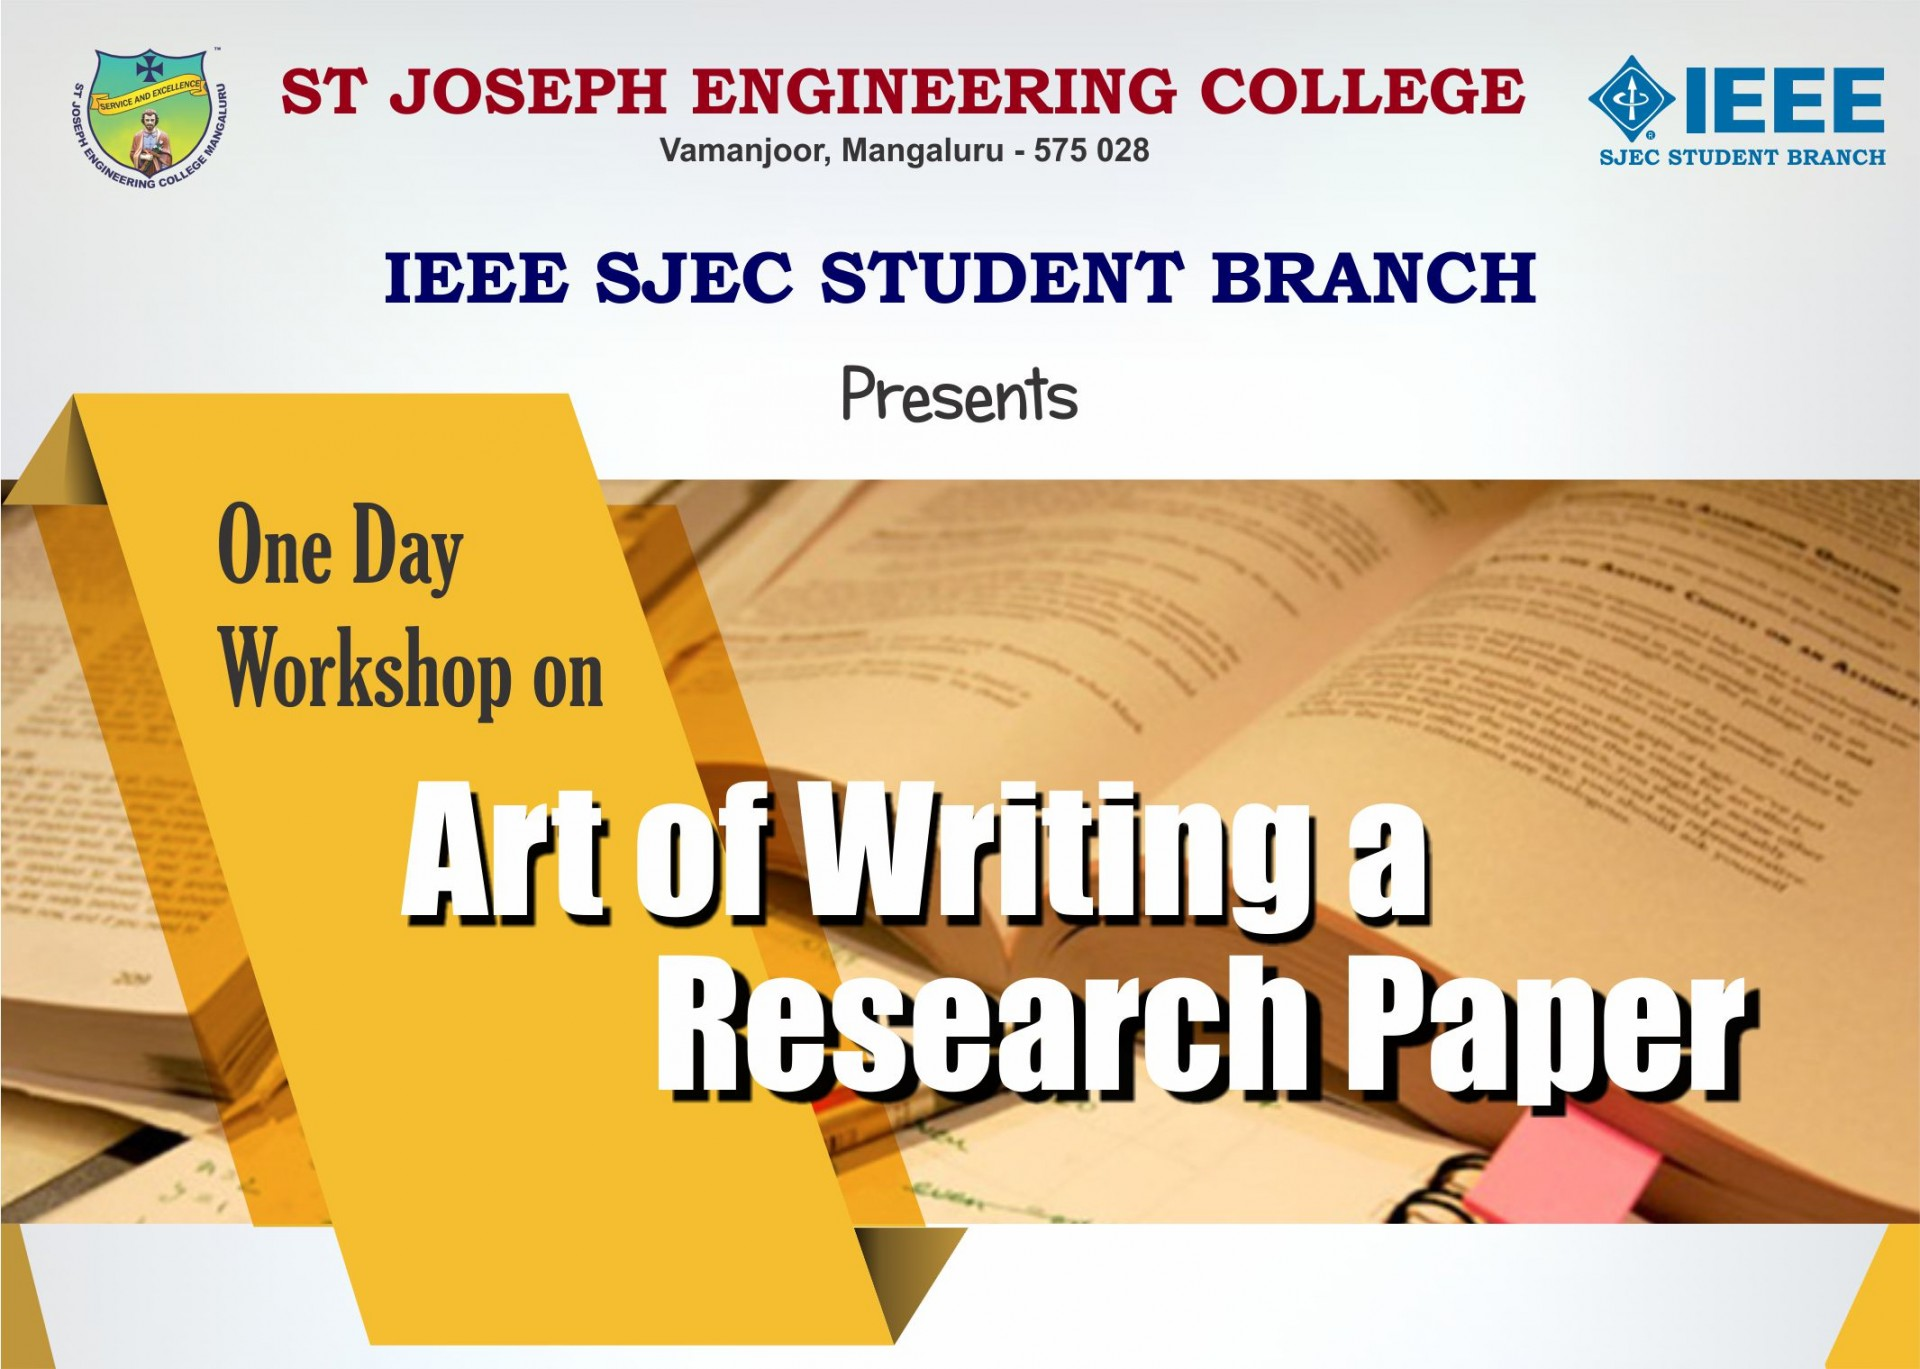 011 Research Paper Writing Workshop Unforgettable Process Software Ppt 1920